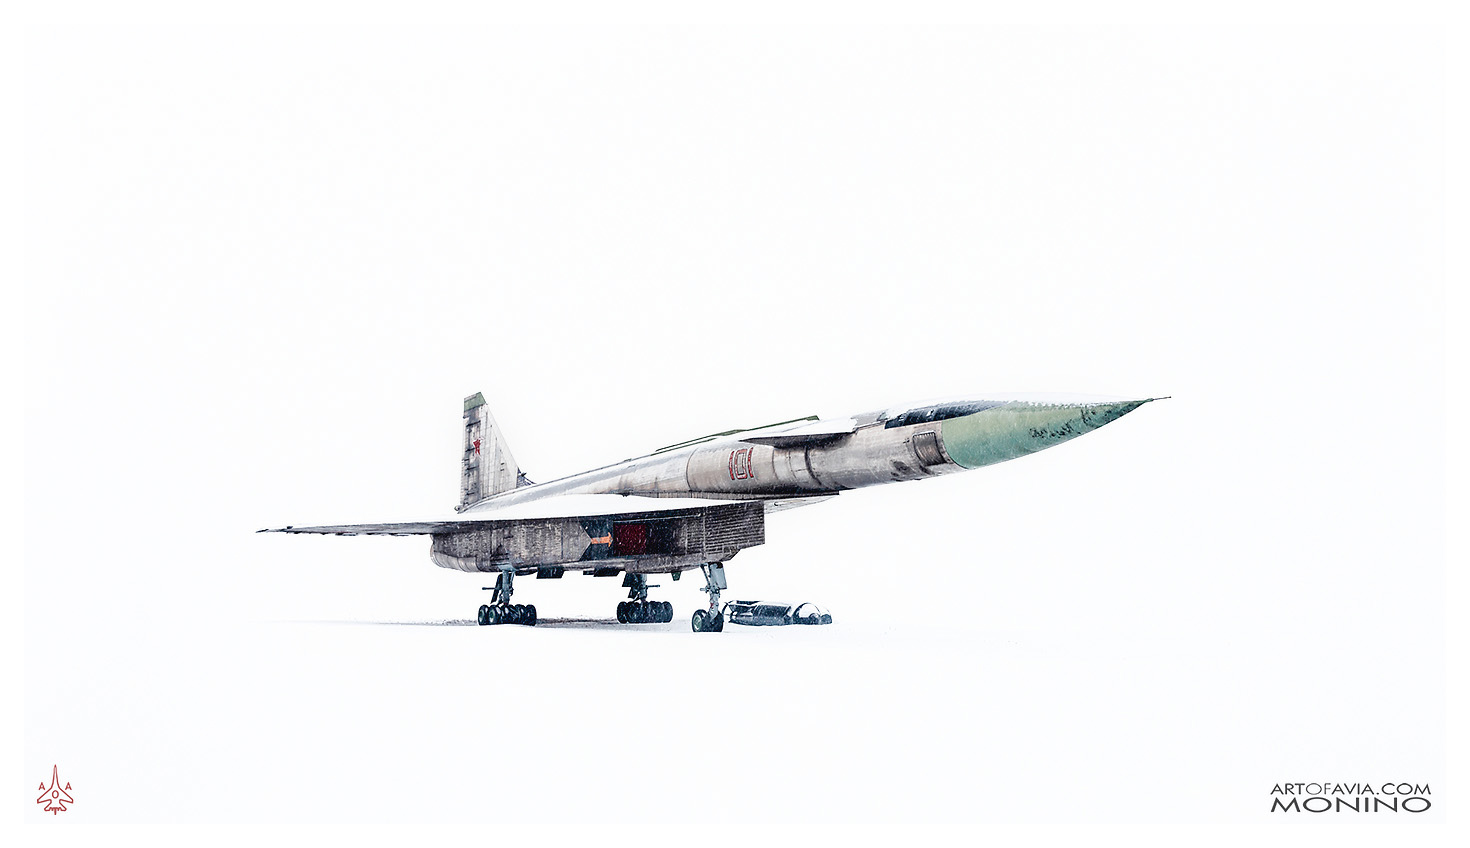 Sukhoi-T-4-Sotka-Project-100-Nose-Up-Central-Air-Force-Museum-Monino-Art-of-Avia-by-Kent-Miklenda-800pxh-2-WW-FR-A-BW.jpg